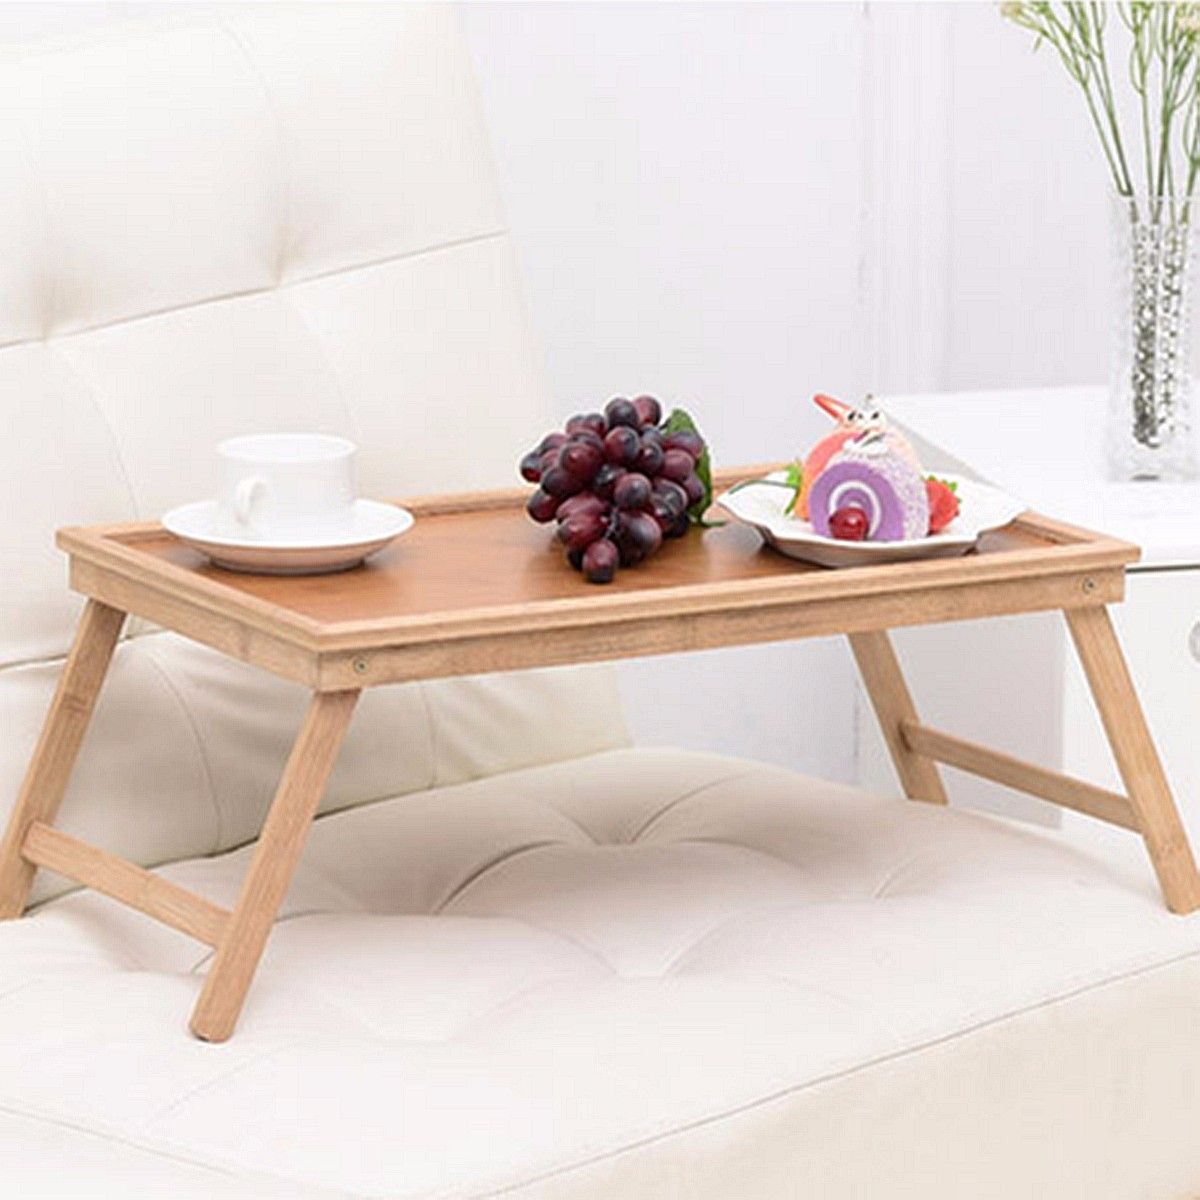 Foldable Wooden Bamboo Bed Tray Breakfast Laptop Desk Tea Serving Table Stand New Laptop Stand Holder Notebook Cooler Cooling